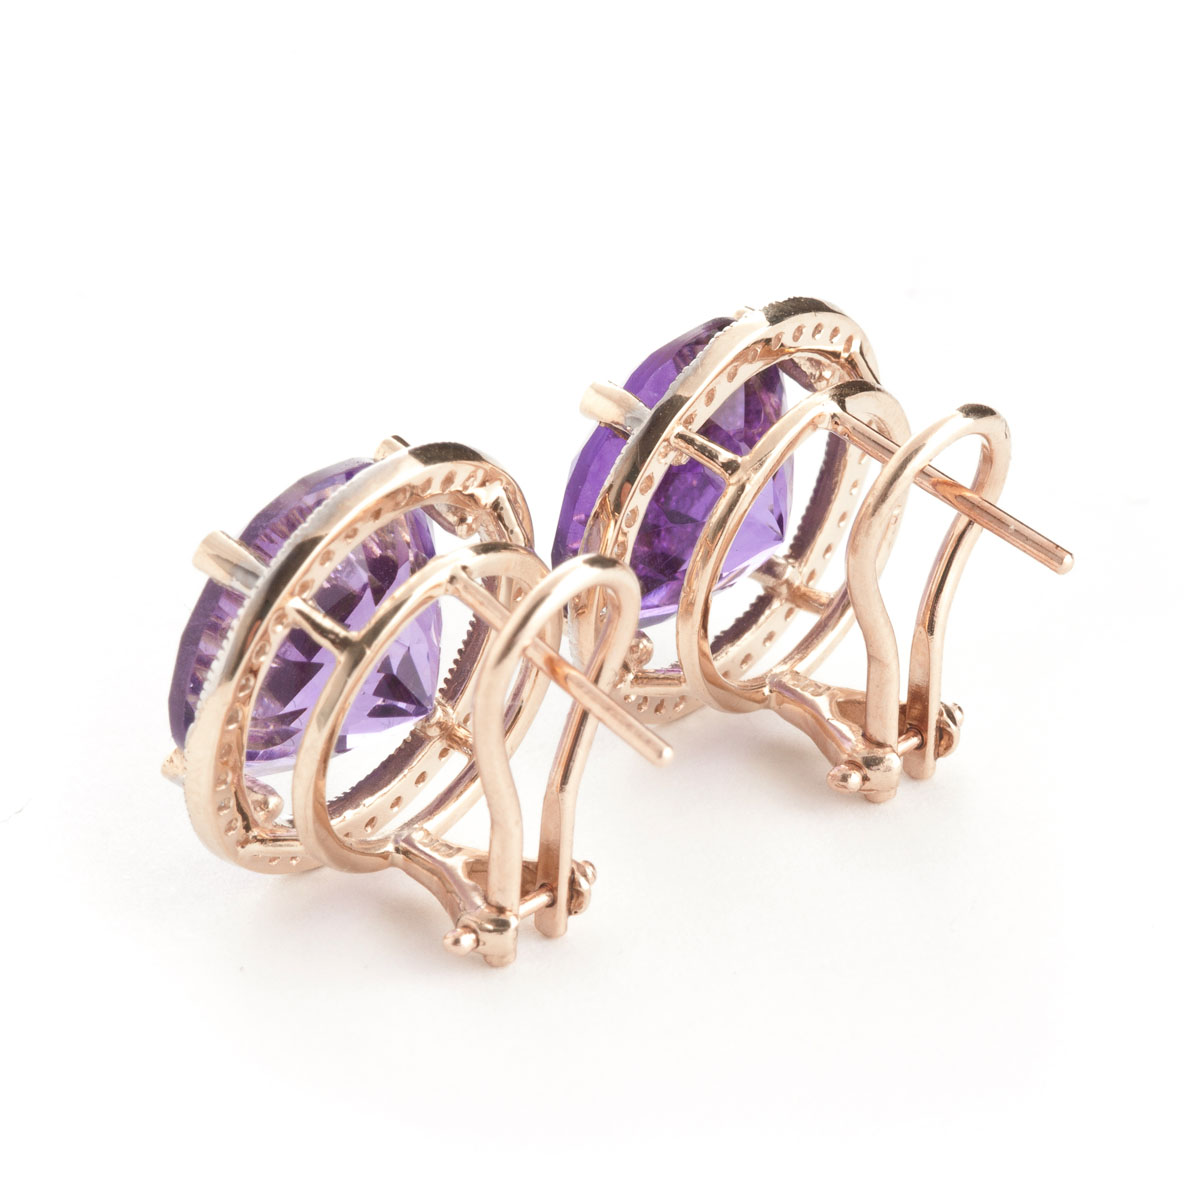 Amethyst French Clip Halo Earrings 12.4 ctw in 9ct Rose Gold